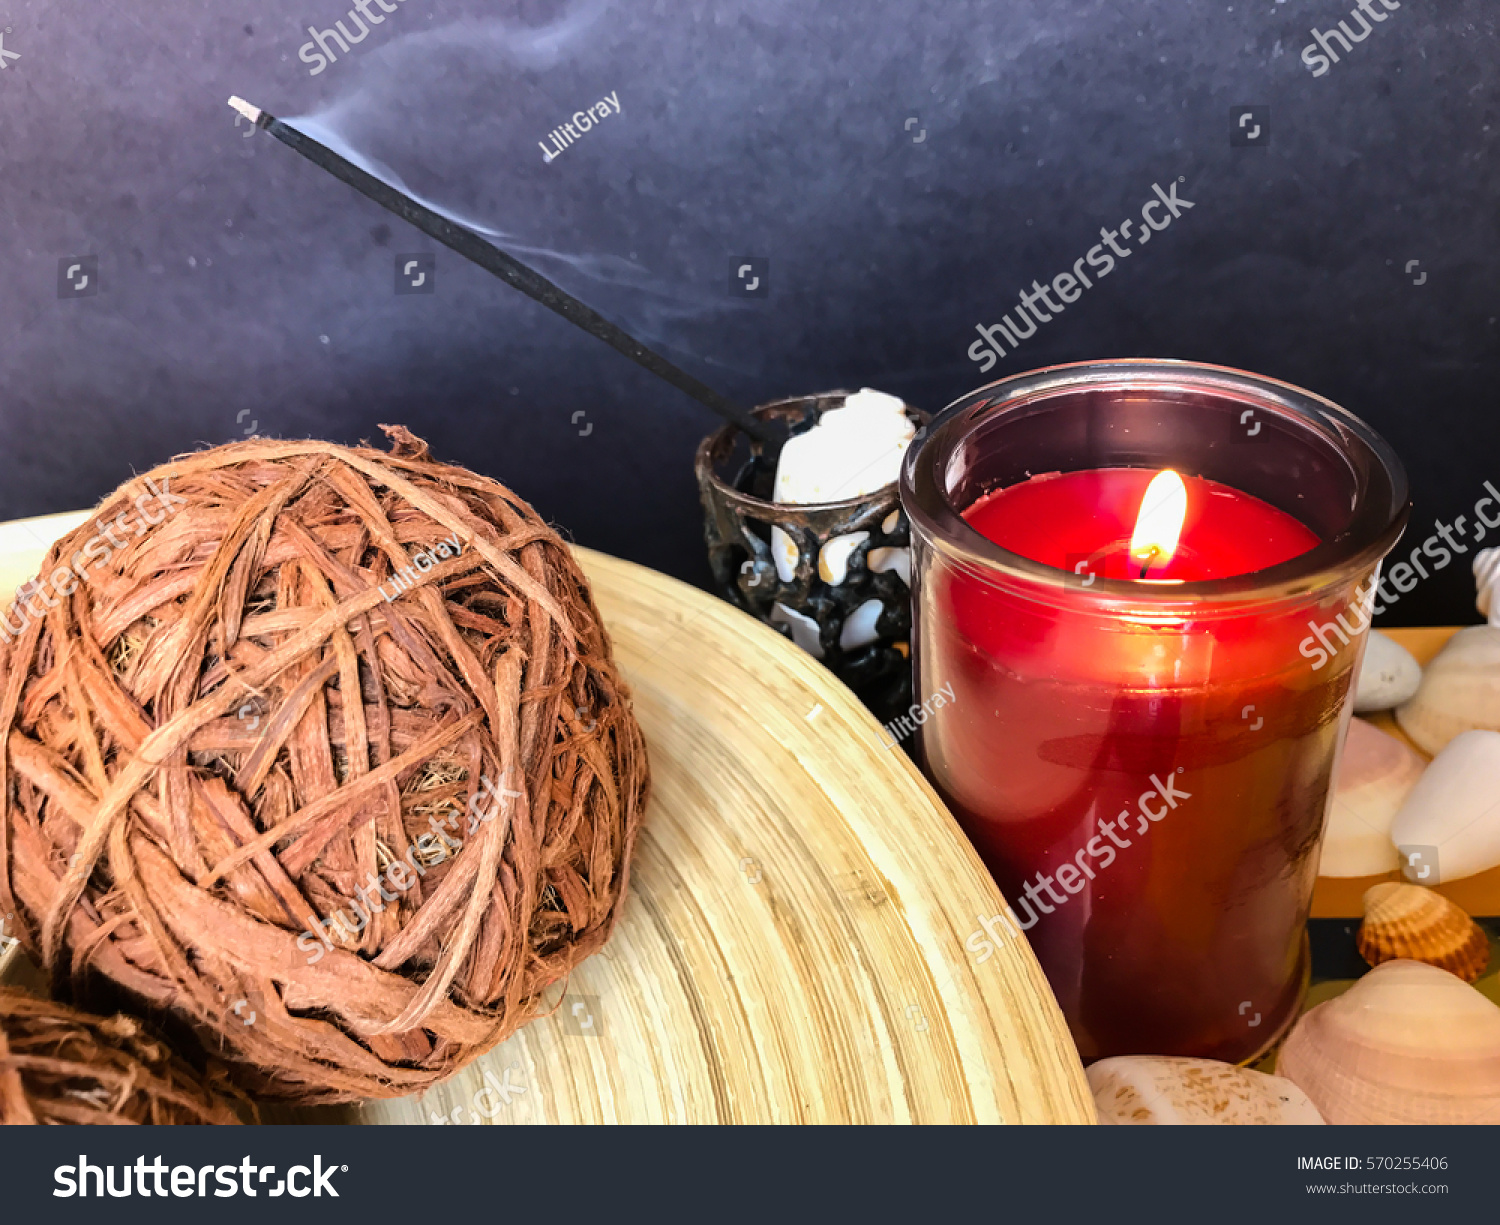 Decorations Relaxation Wallpaper Candle Rattan Balls Holidays Stock Image 570255406